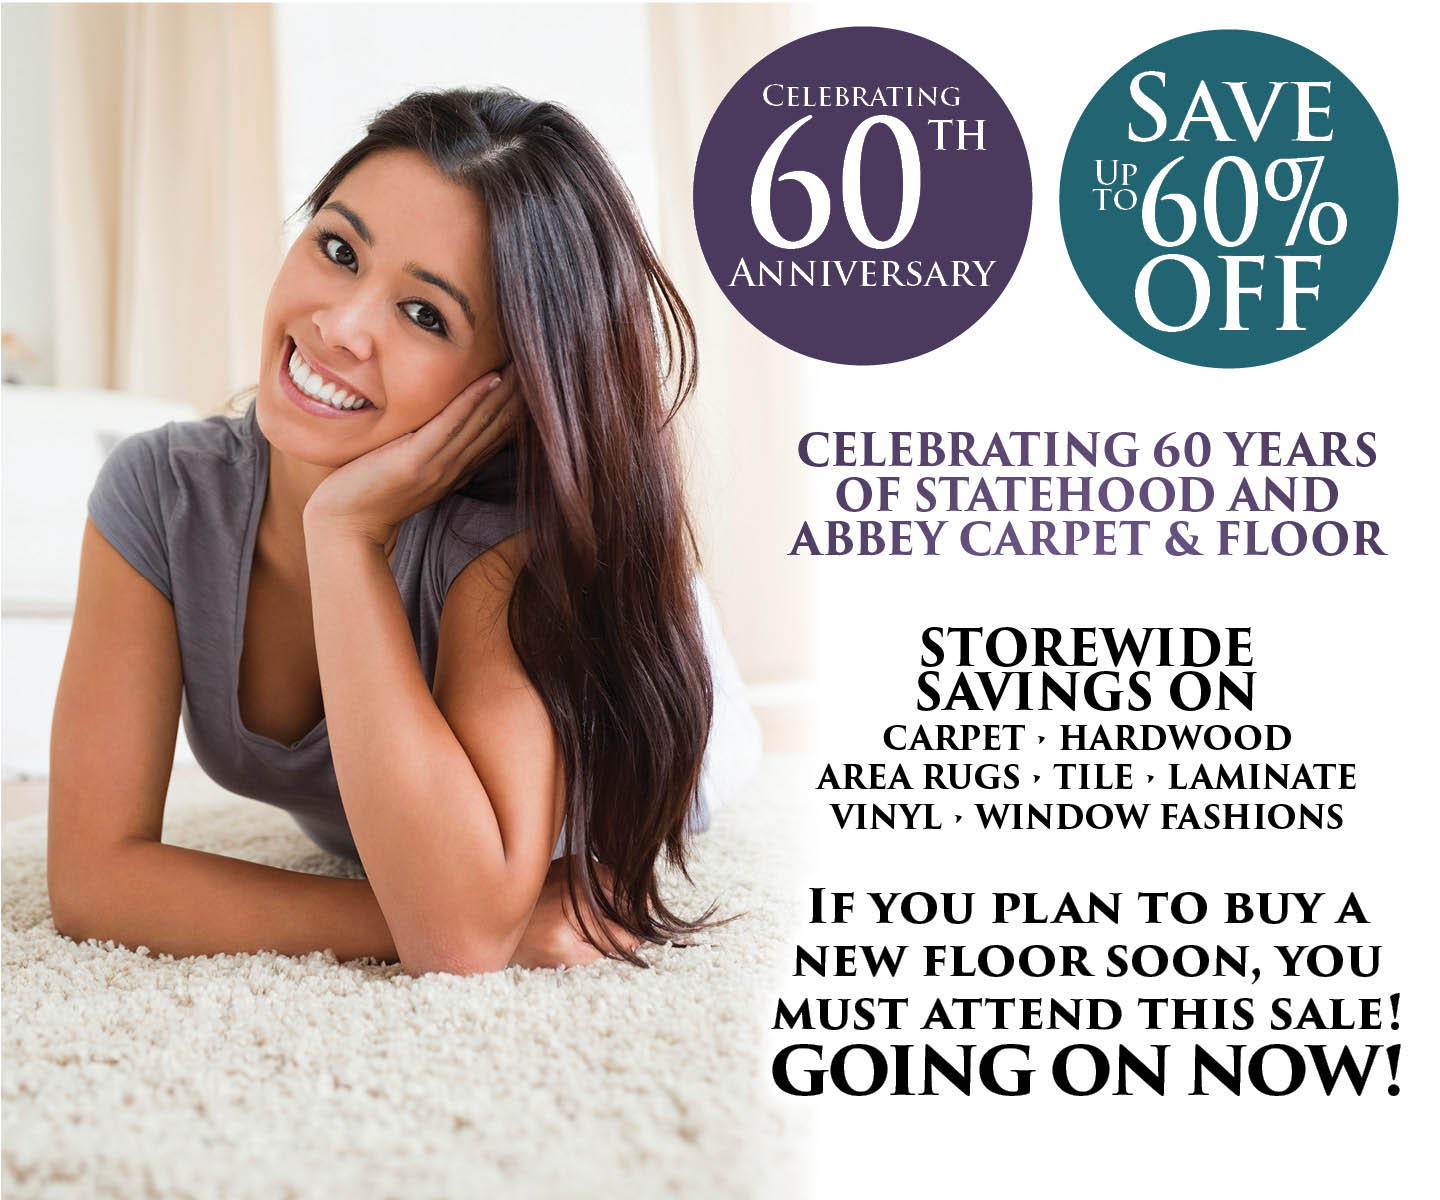 Celebrating 50 years of statehood and Abbey Carpet & Floor!  Save up to 60% OFF storewide!